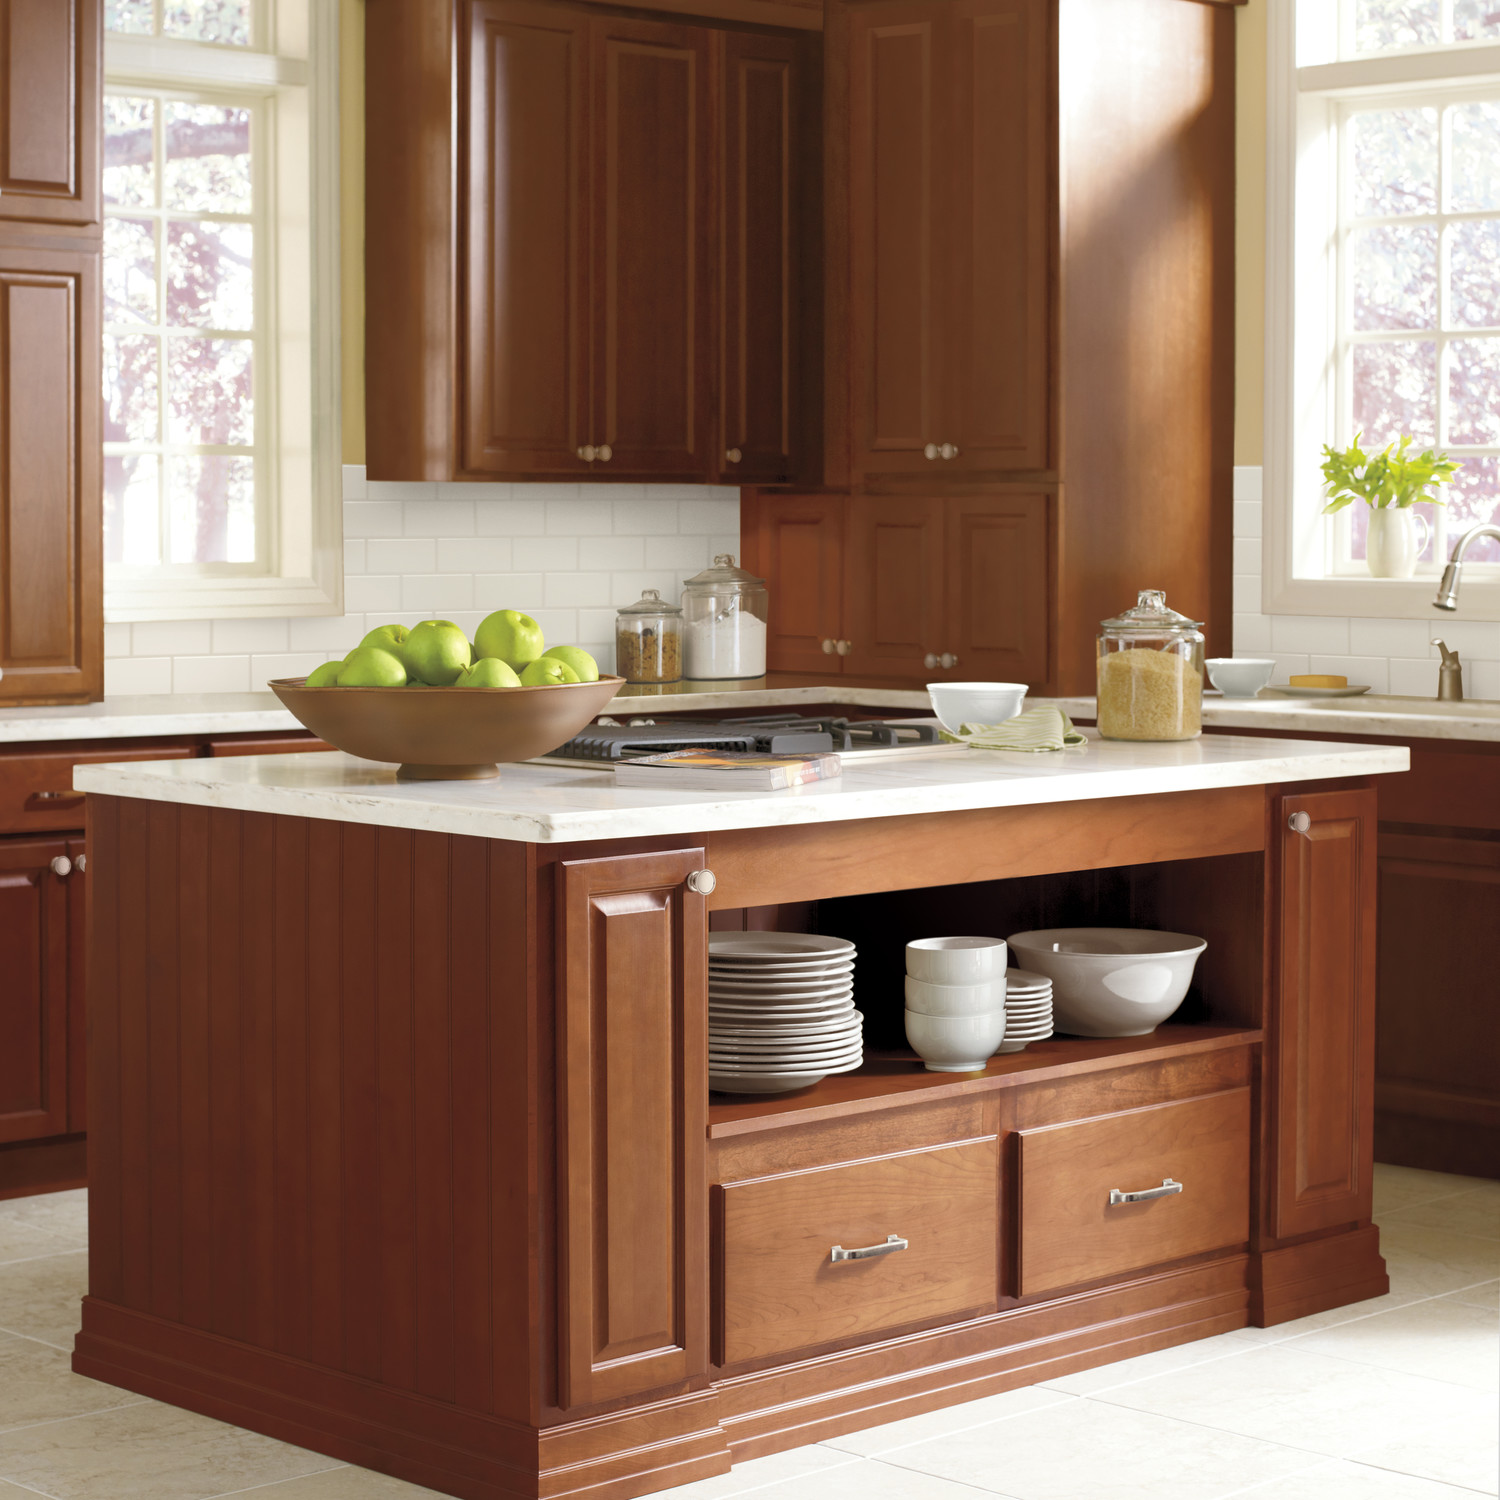 Kitchen Furniture: How To Seriously Deep Clean Your Kitchen Cabinets